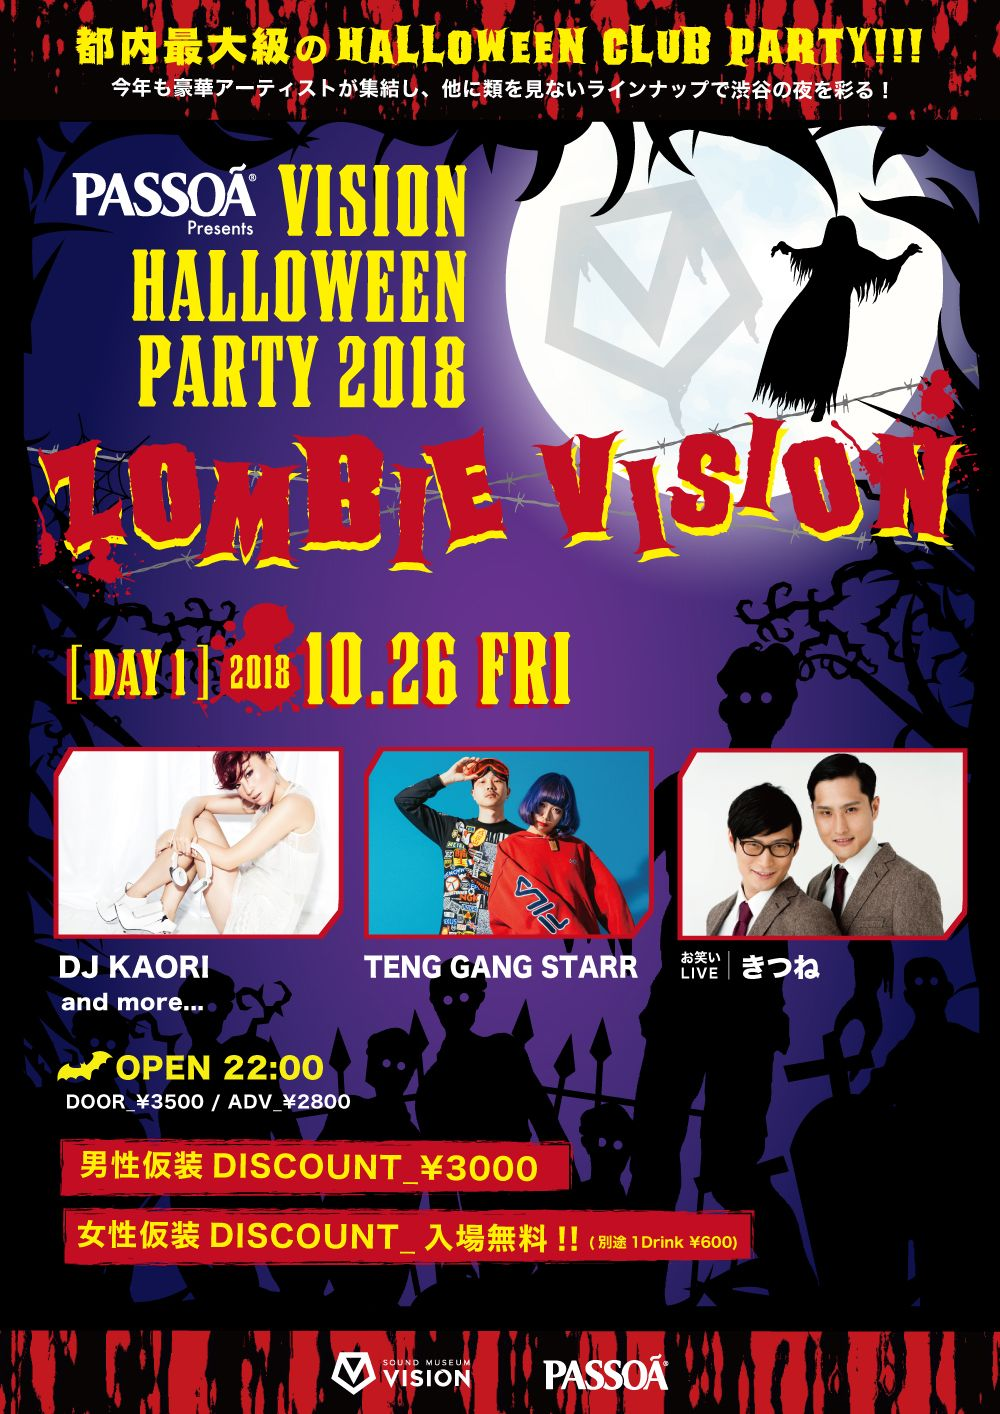 passoa presents vision halloween party 2018 zombie vision day1